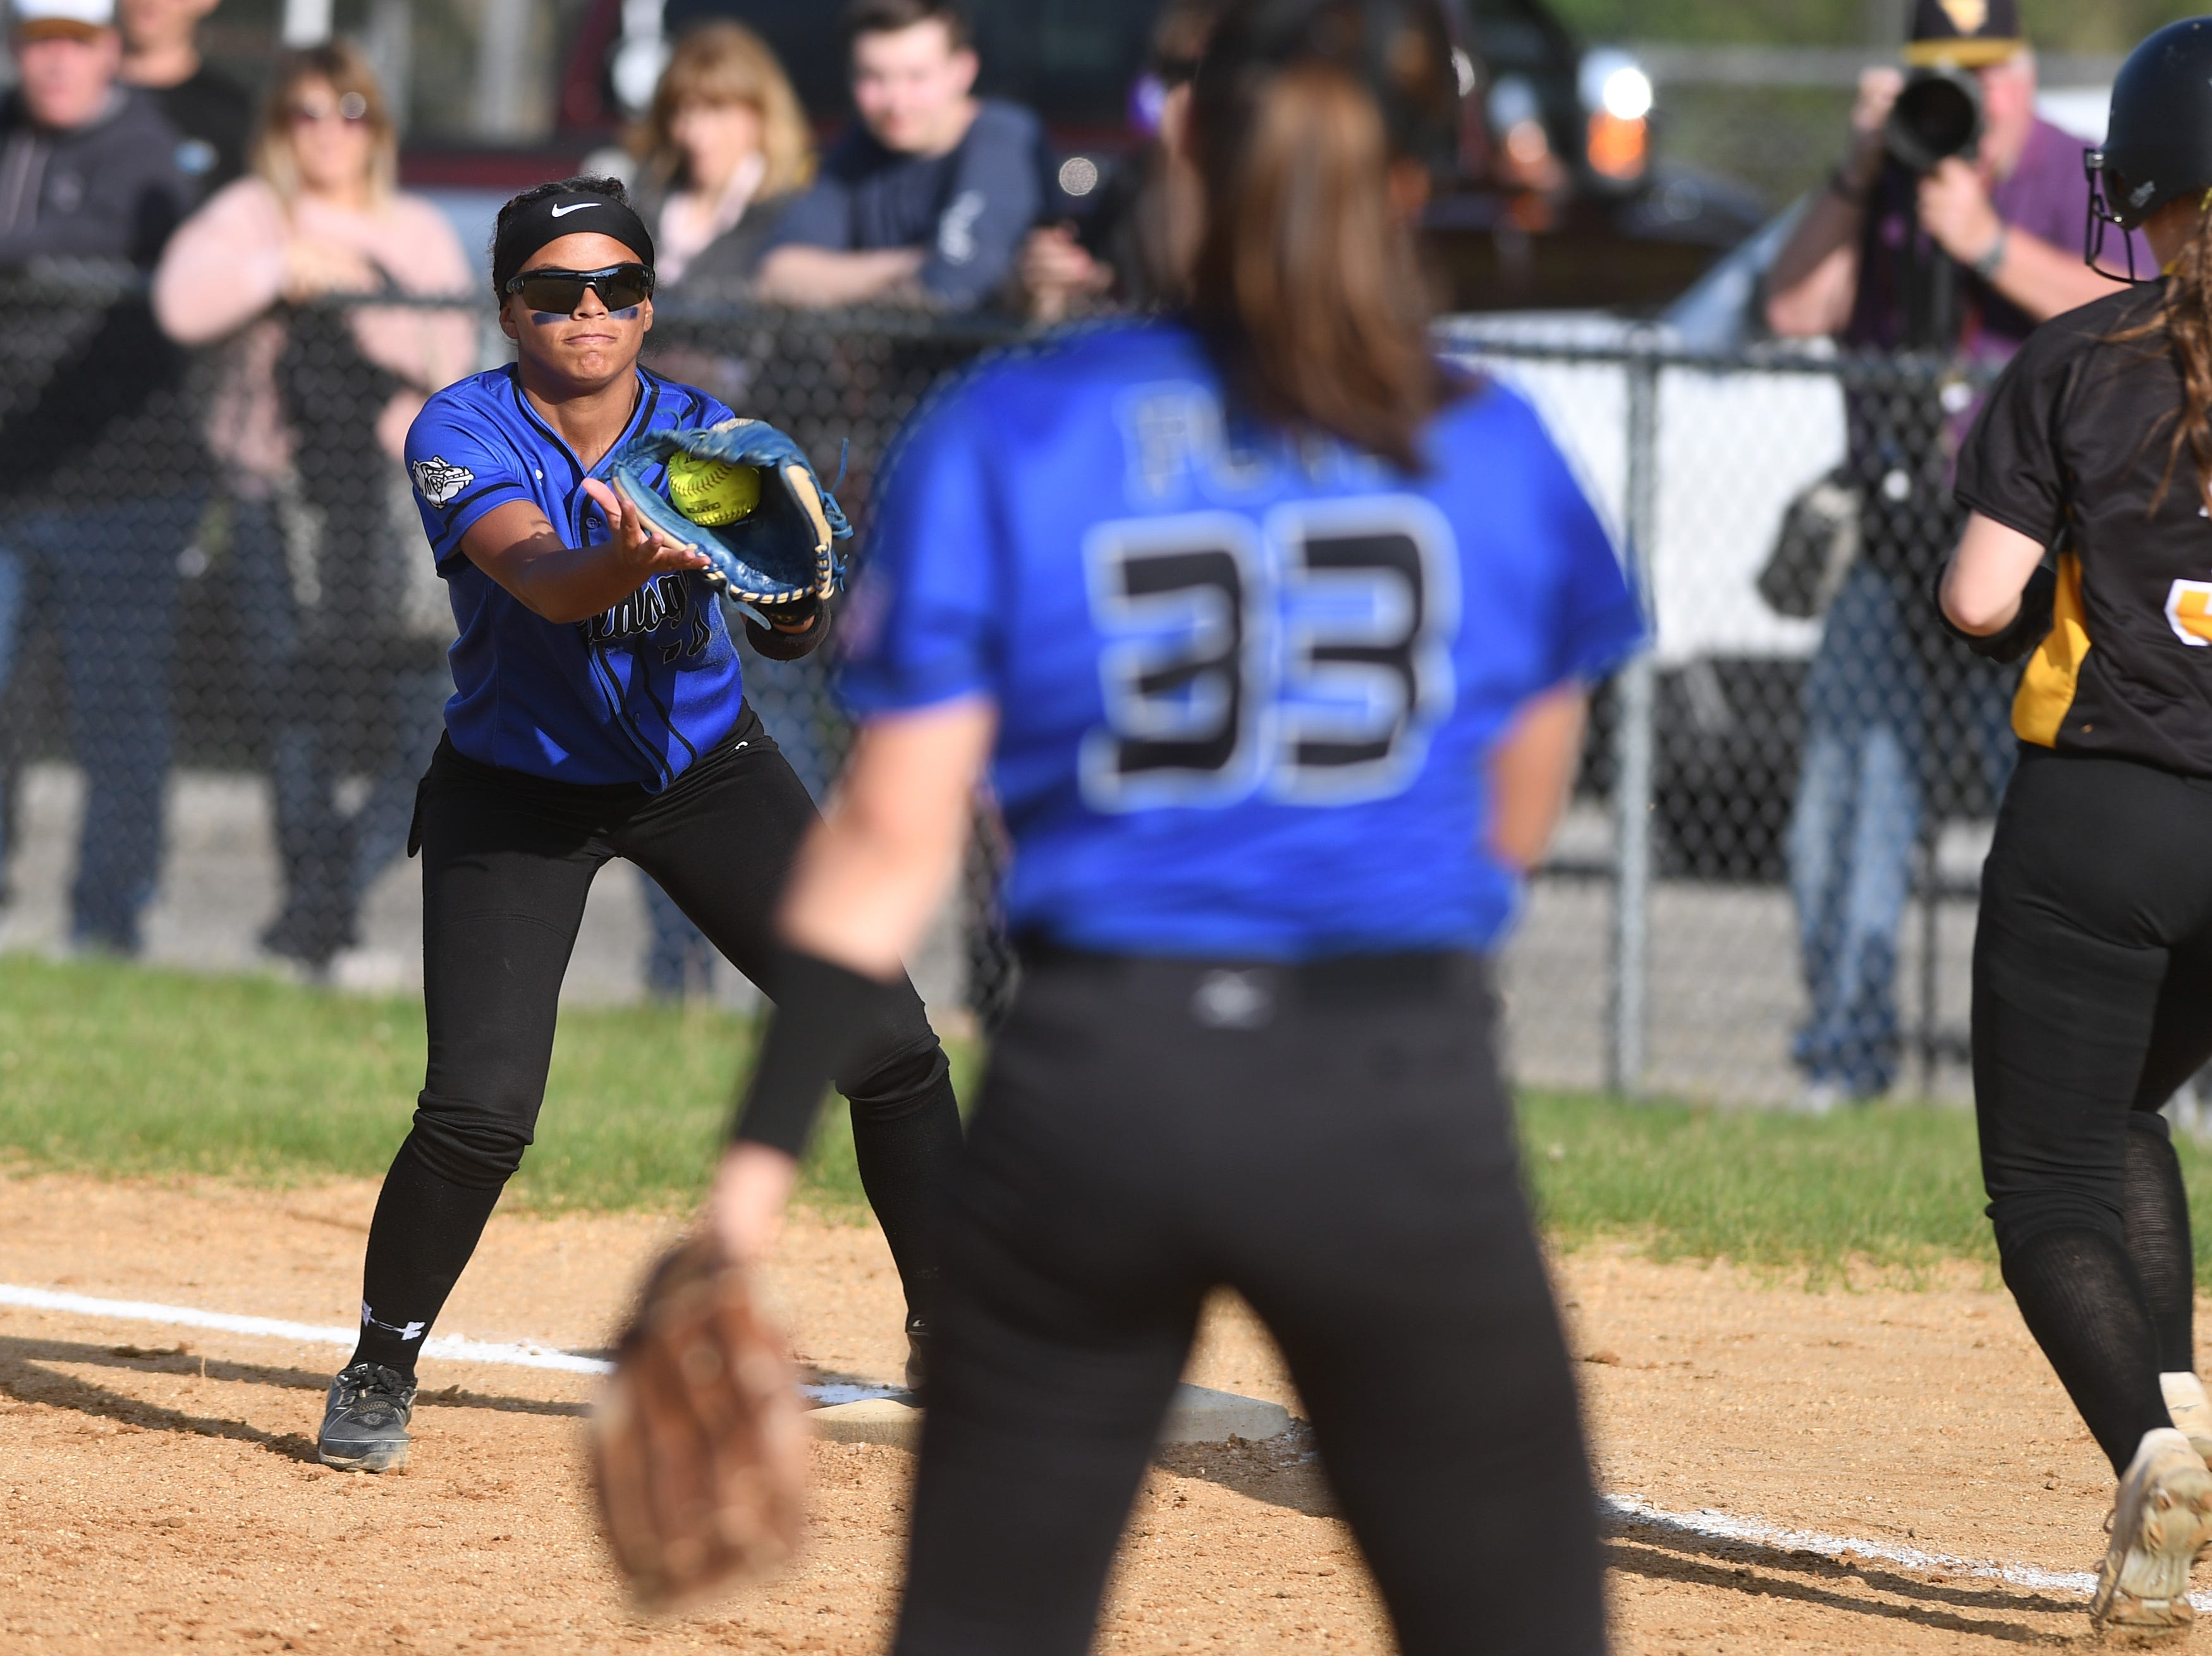 Passaic County Technical Institute vs. West Milford in the Passaic County Tournament softball final at Wayne Hills High School on Wednesday, May 15, 2019. PCTI #14 Geneen Garner gets the out at first.